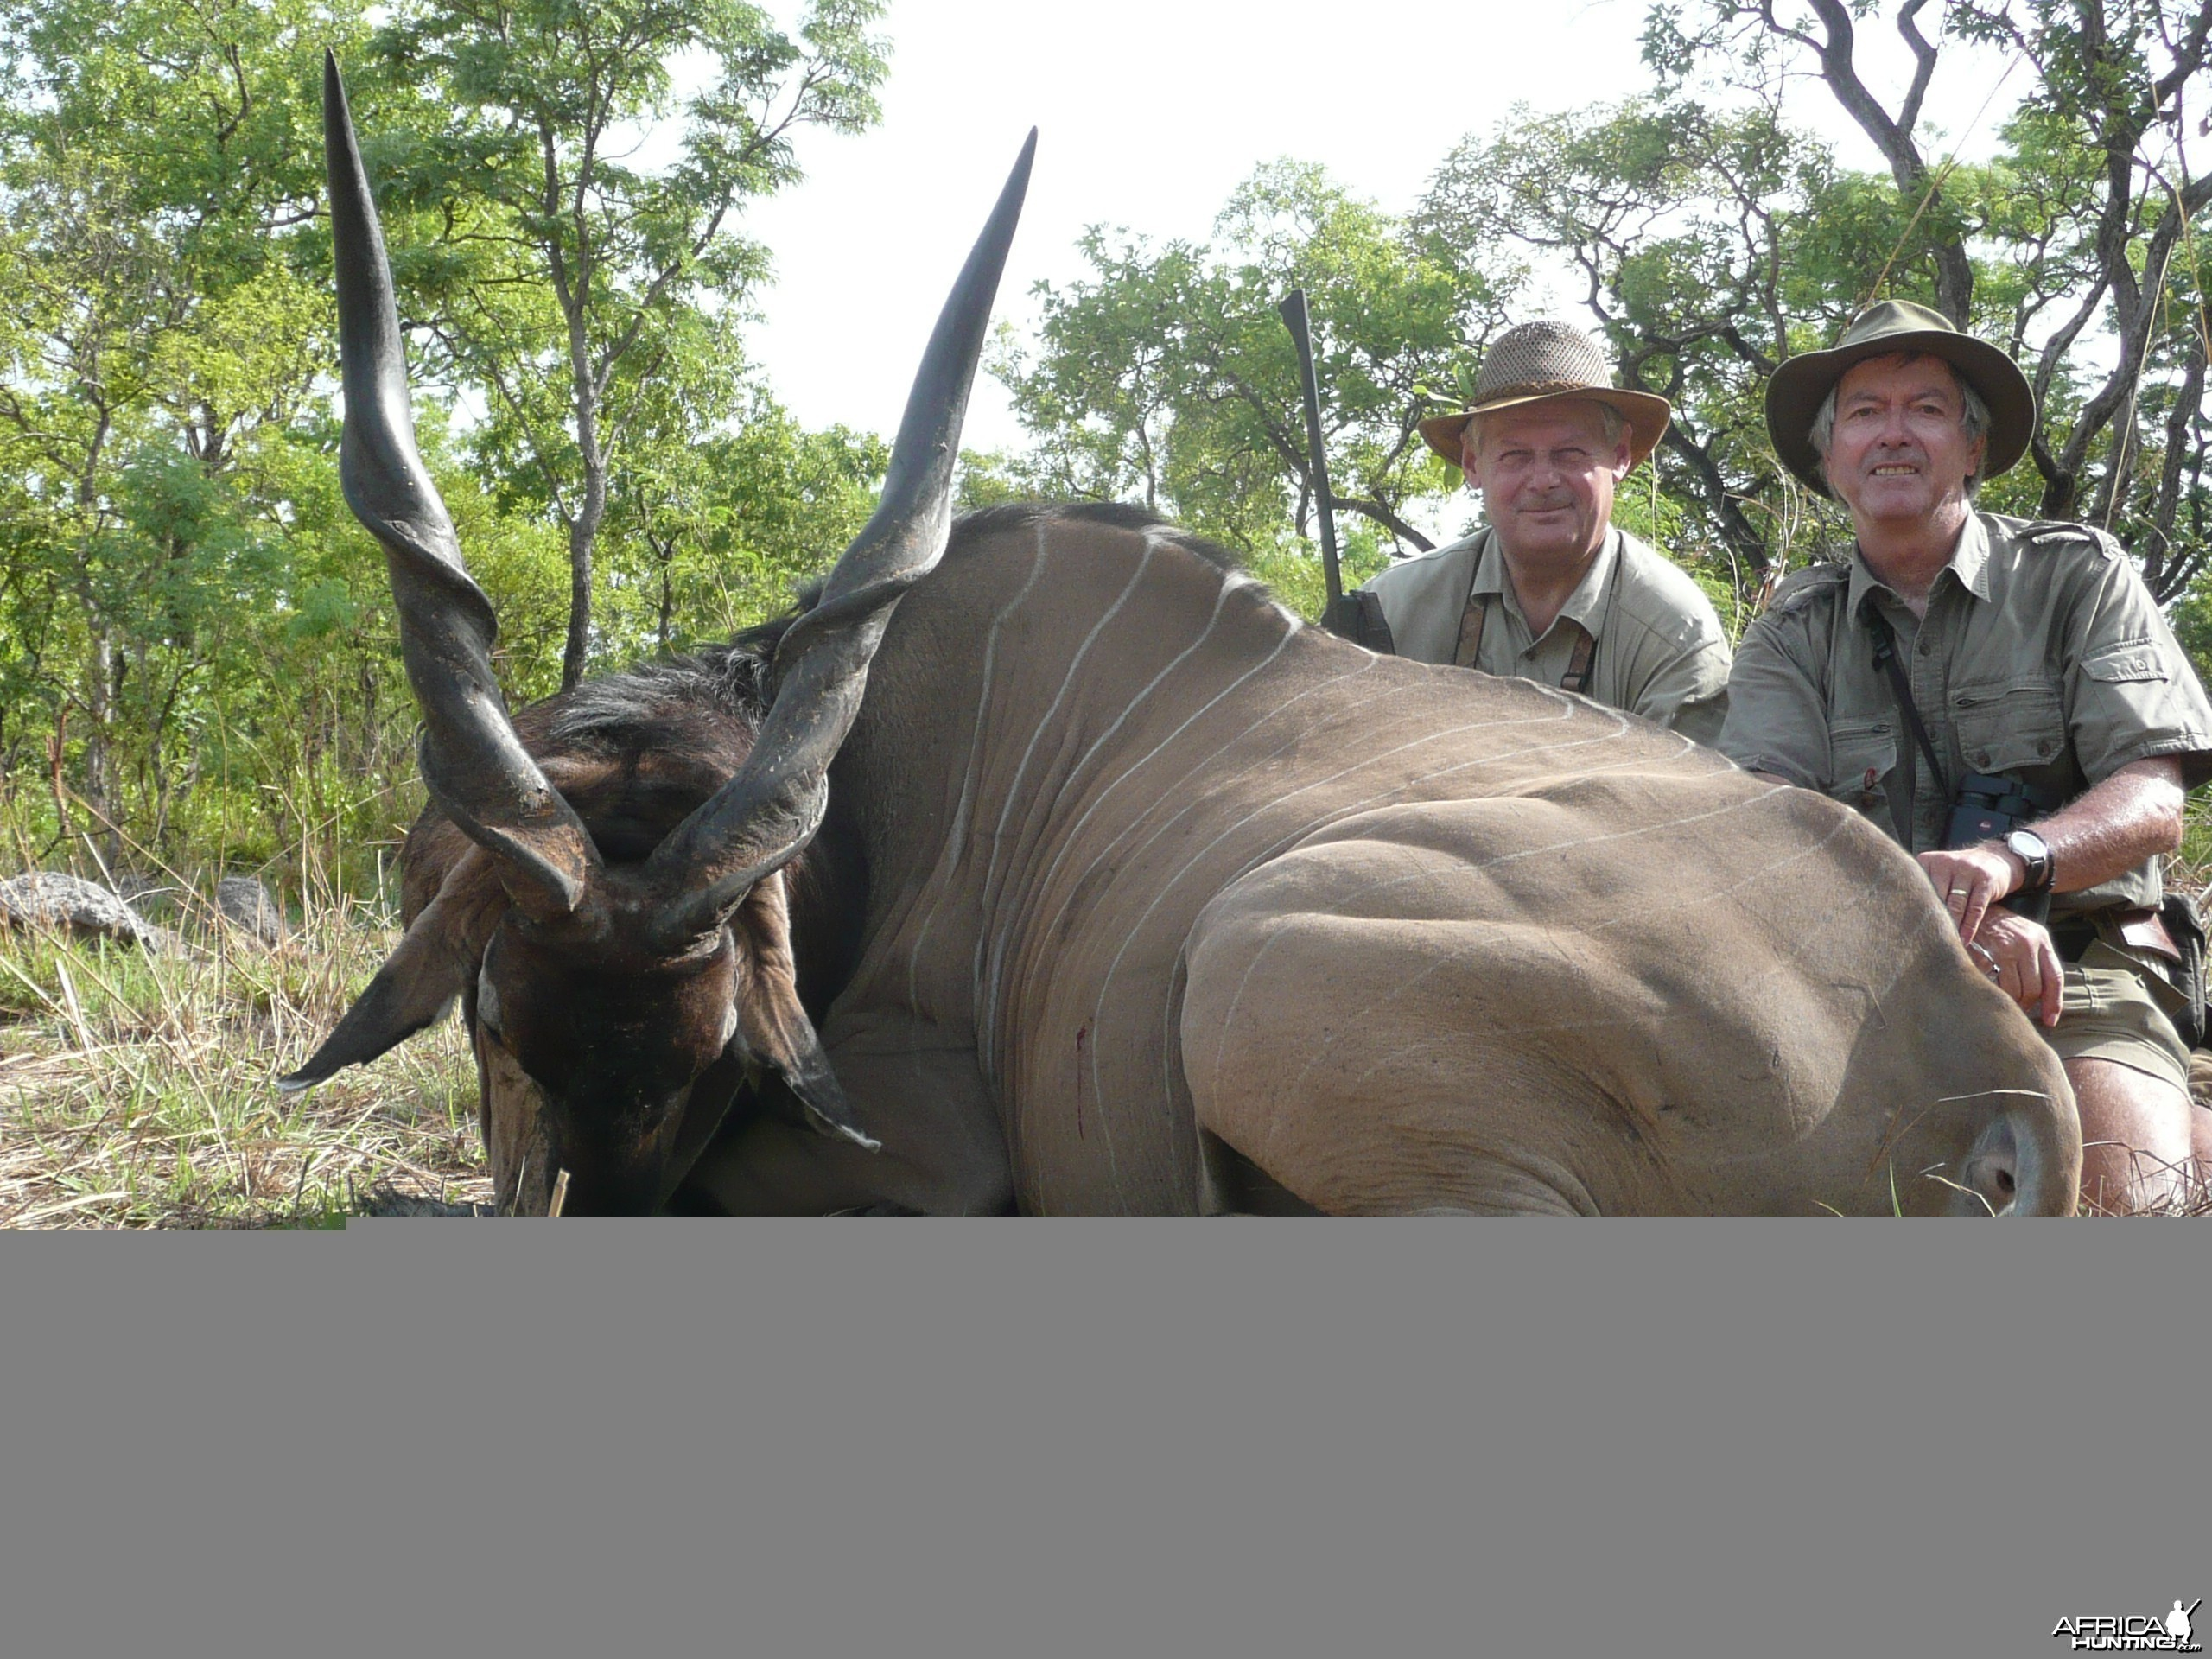 Very old Lord Derby eland hunted in CAR with Rudy Lubin Safaris